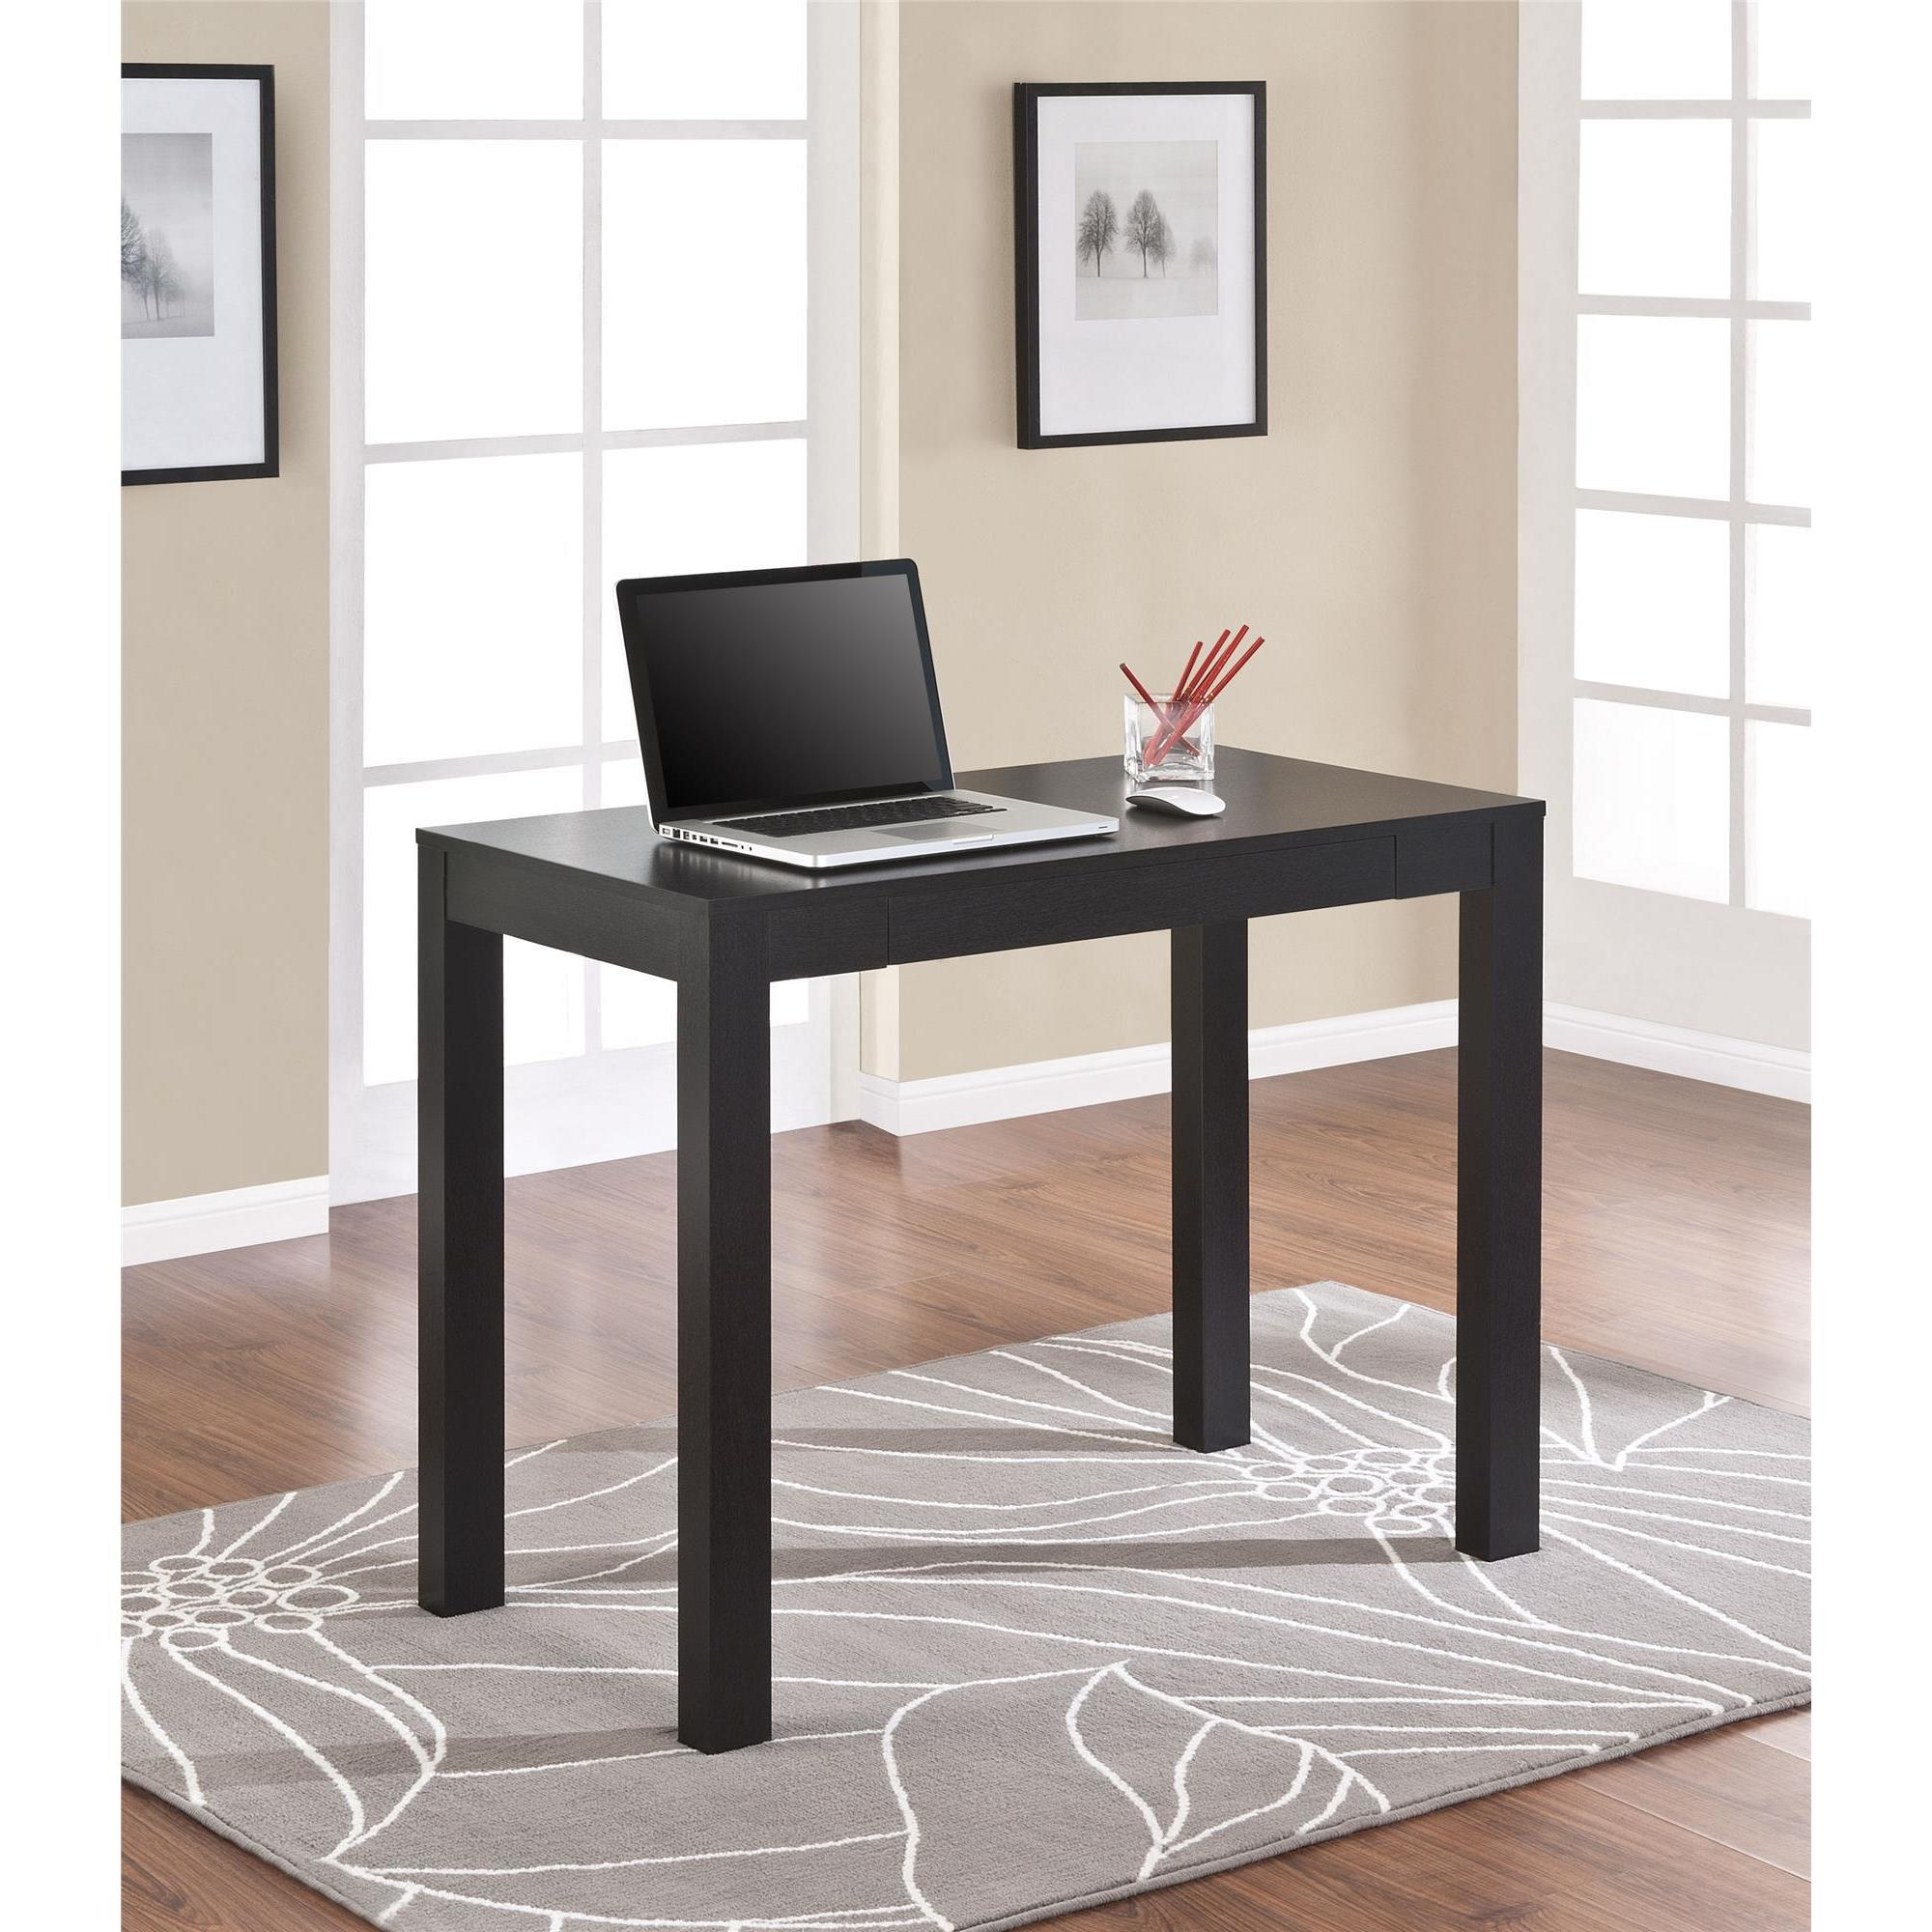 Altra Furniture Avenue Greene Jack Black Oak Desk with Dr...